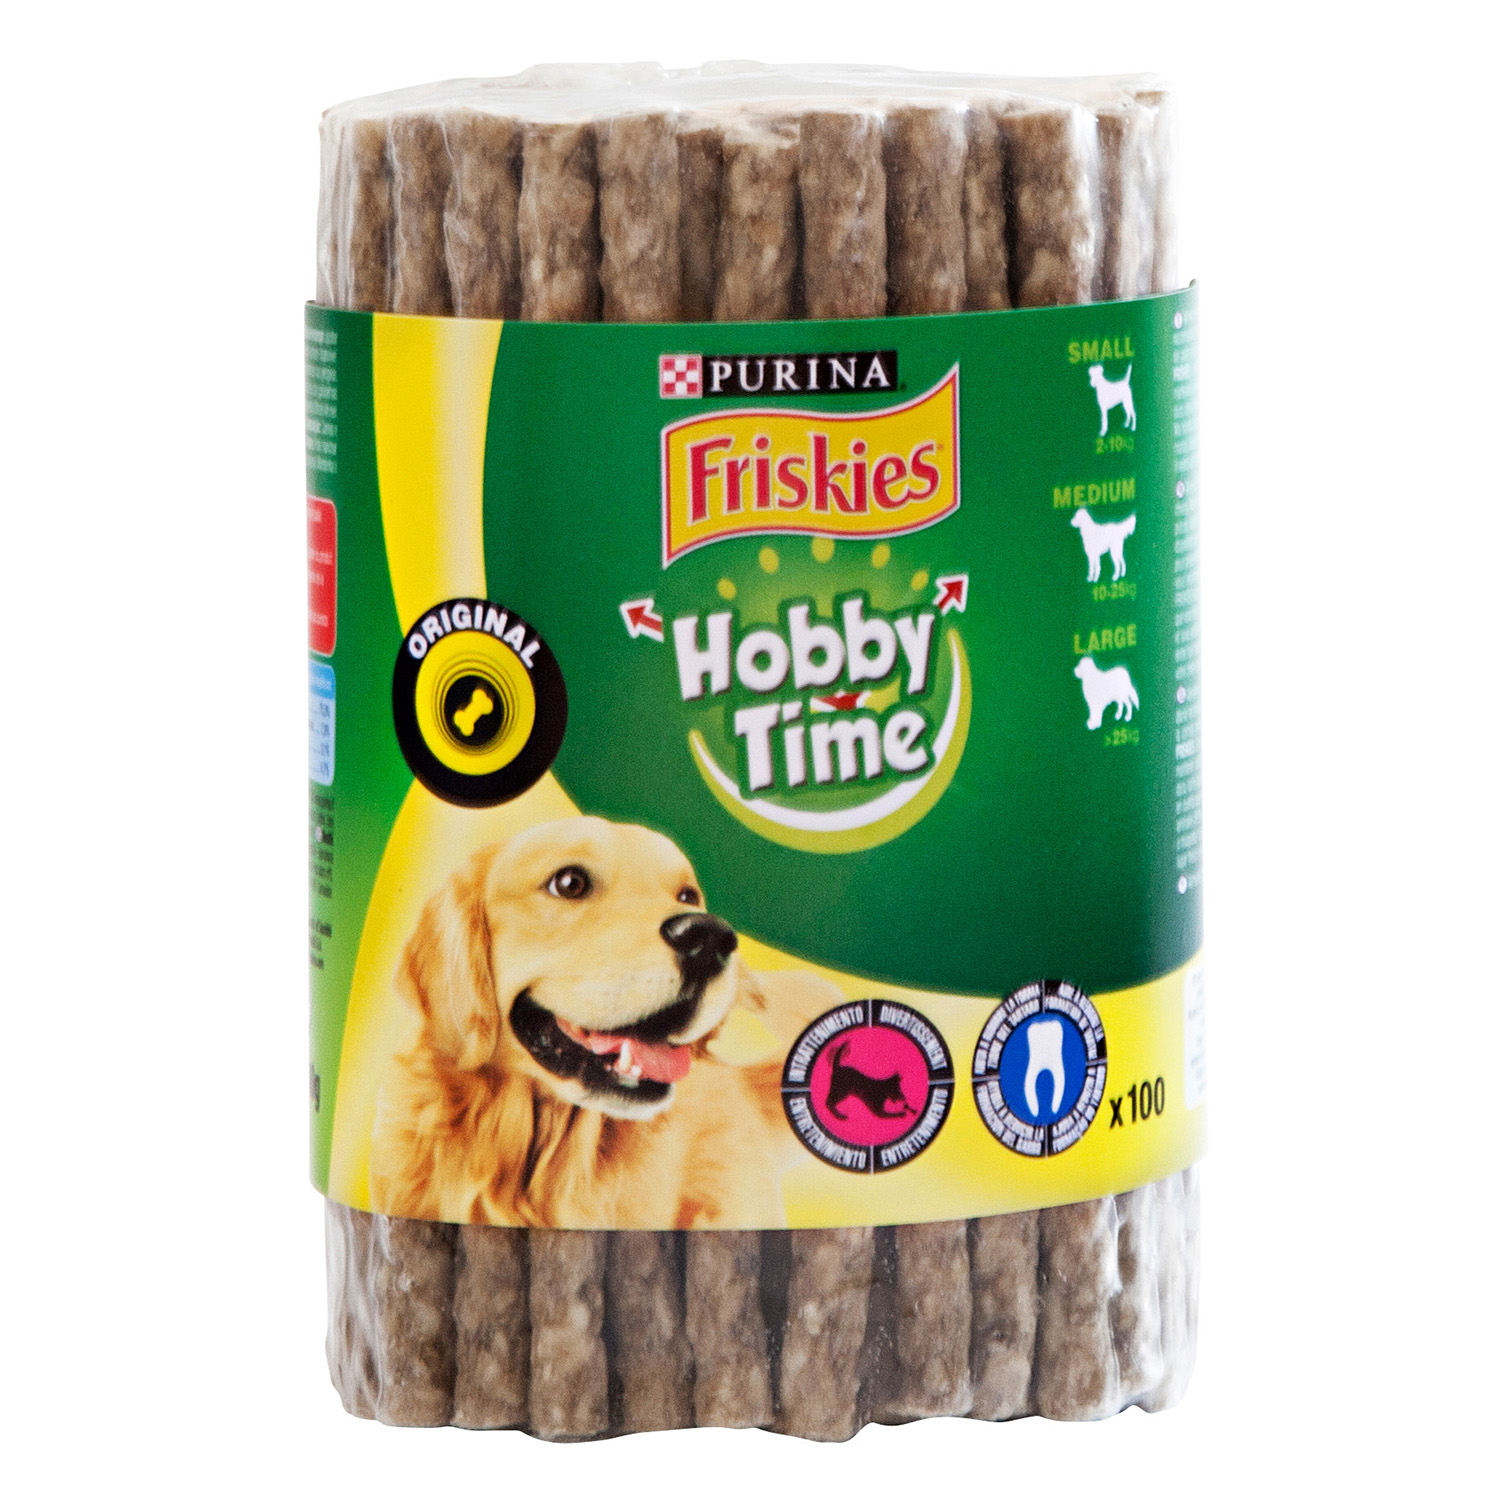 Bastoncitos Reconstituidos para Perro Purina Friskies Pleasure Chewing 600 gr